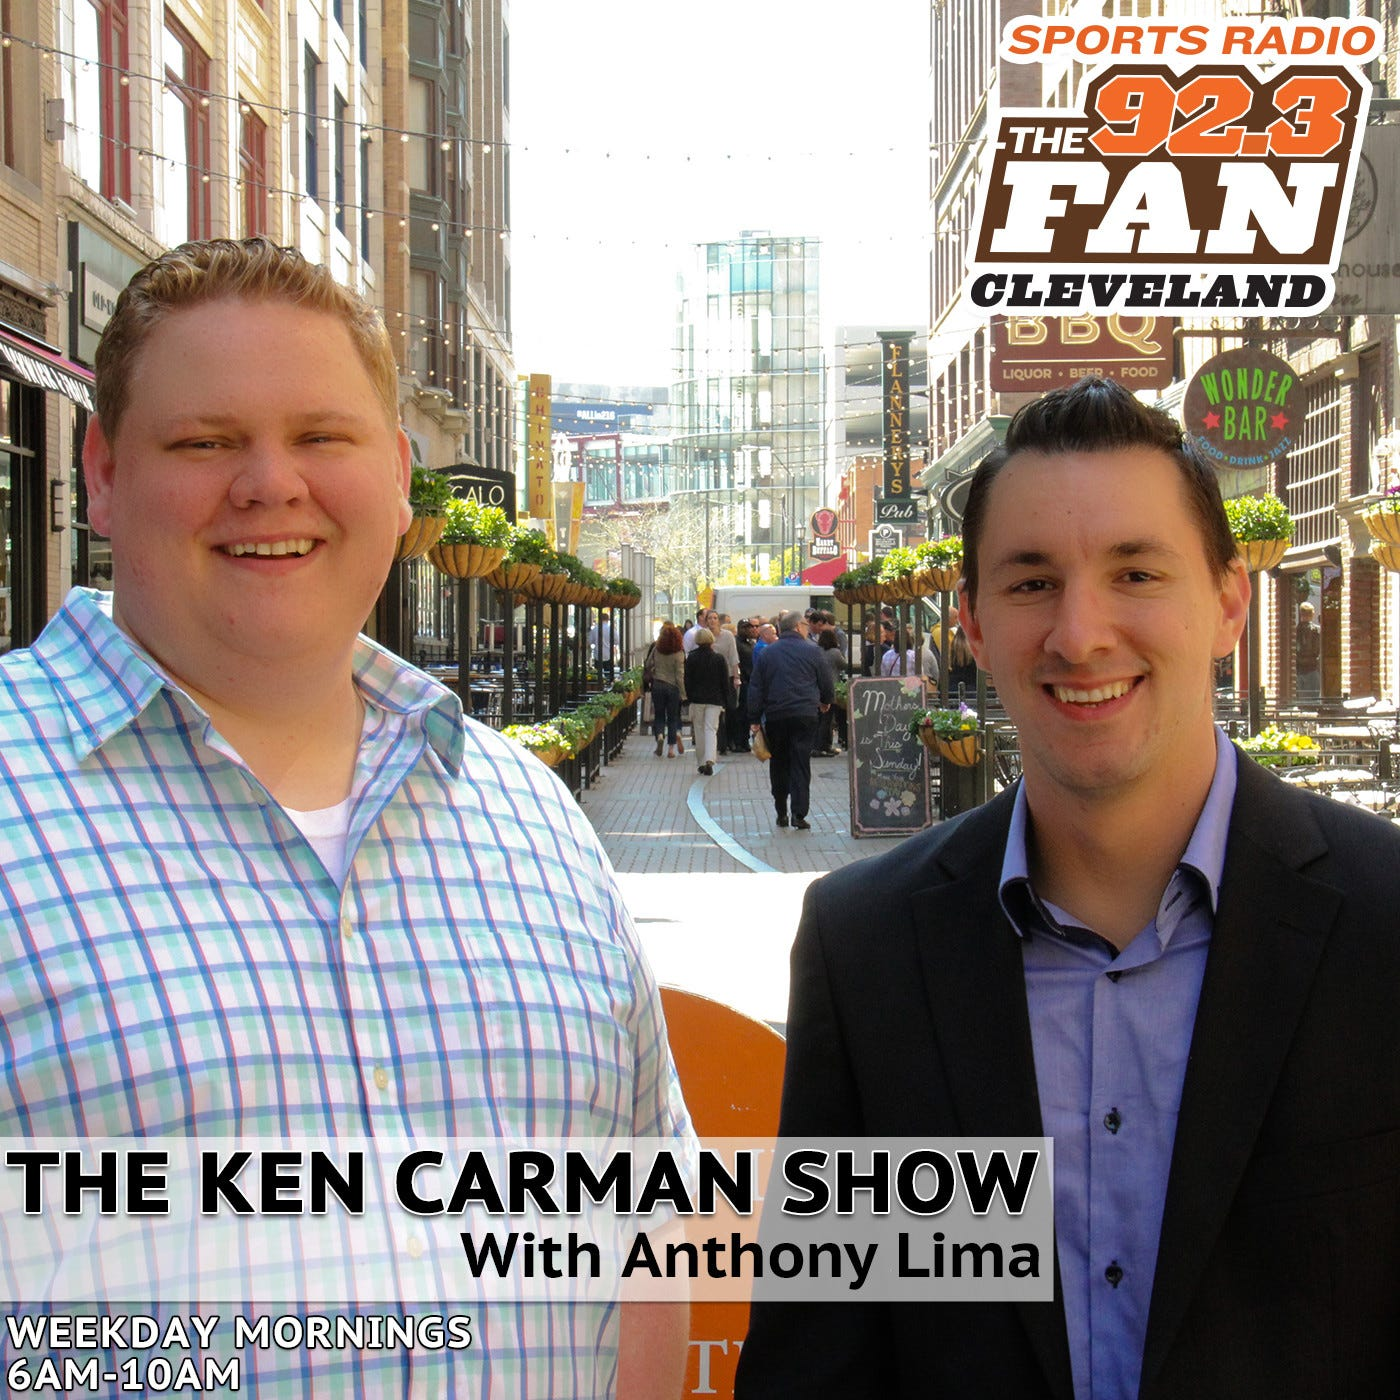 The Ken Carman Show with Anthony Lima